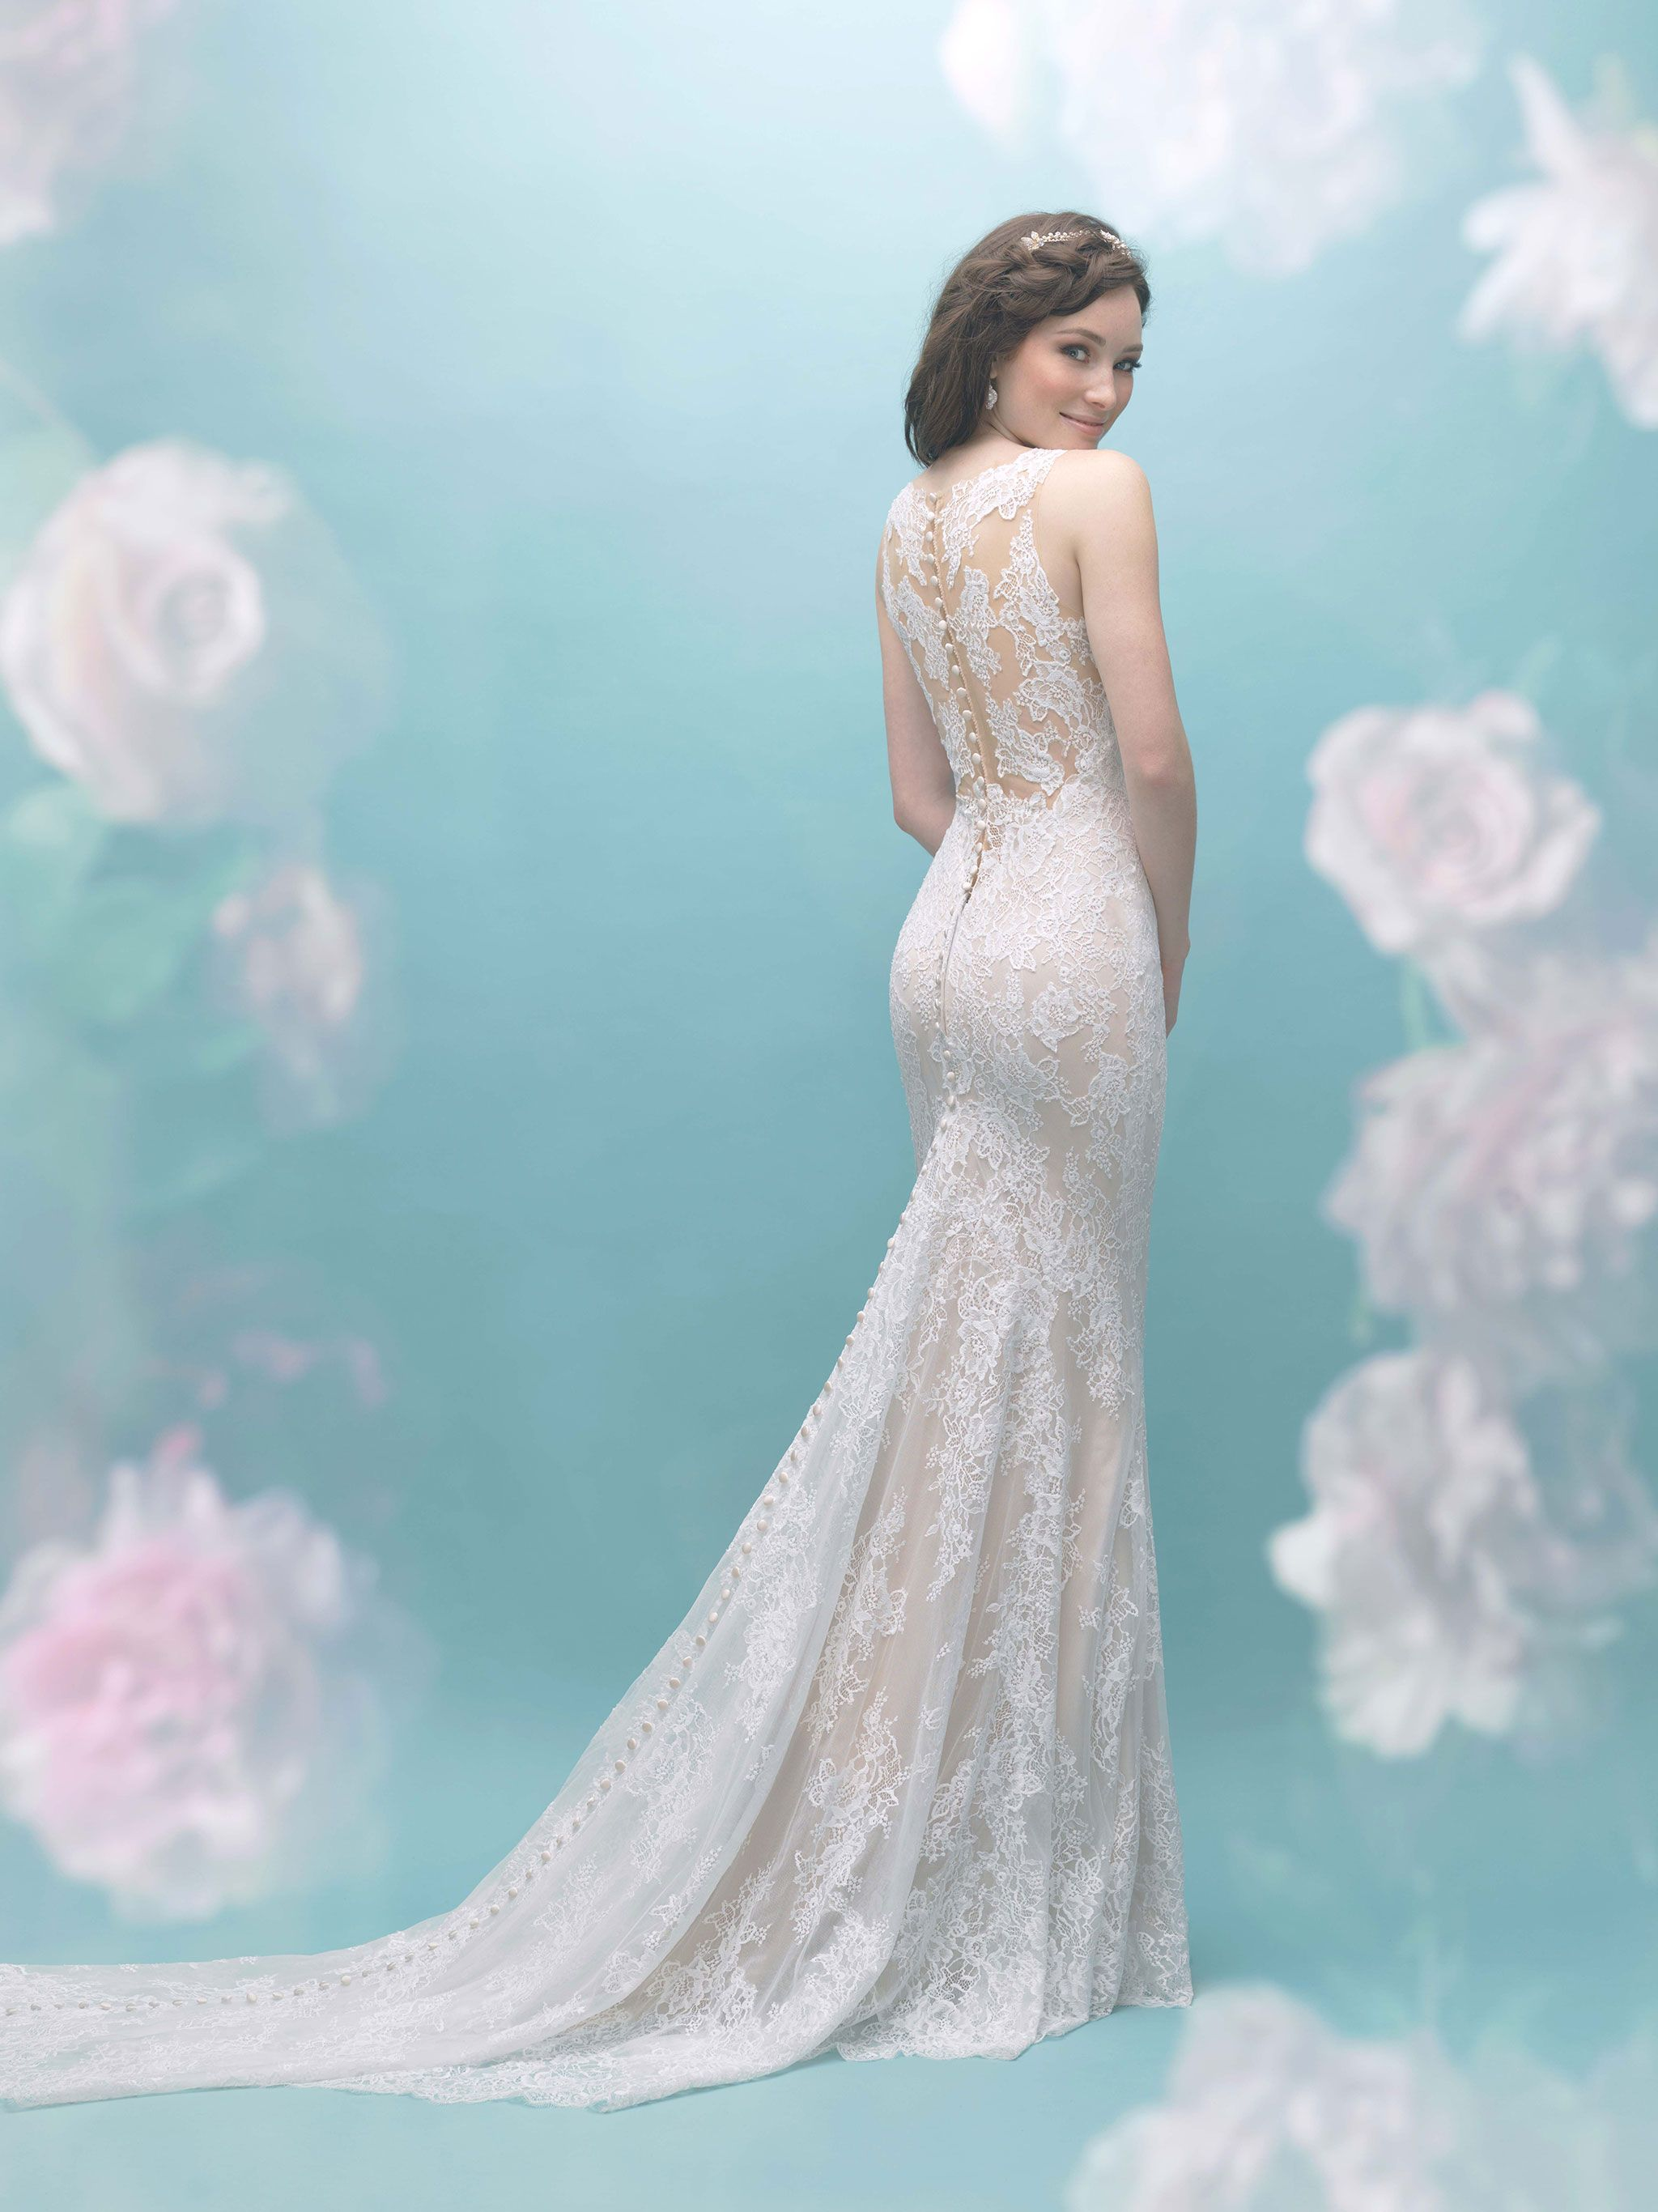 Allure Bridal Wedding Dress. Find Allure Bridal and More at Bridal ...